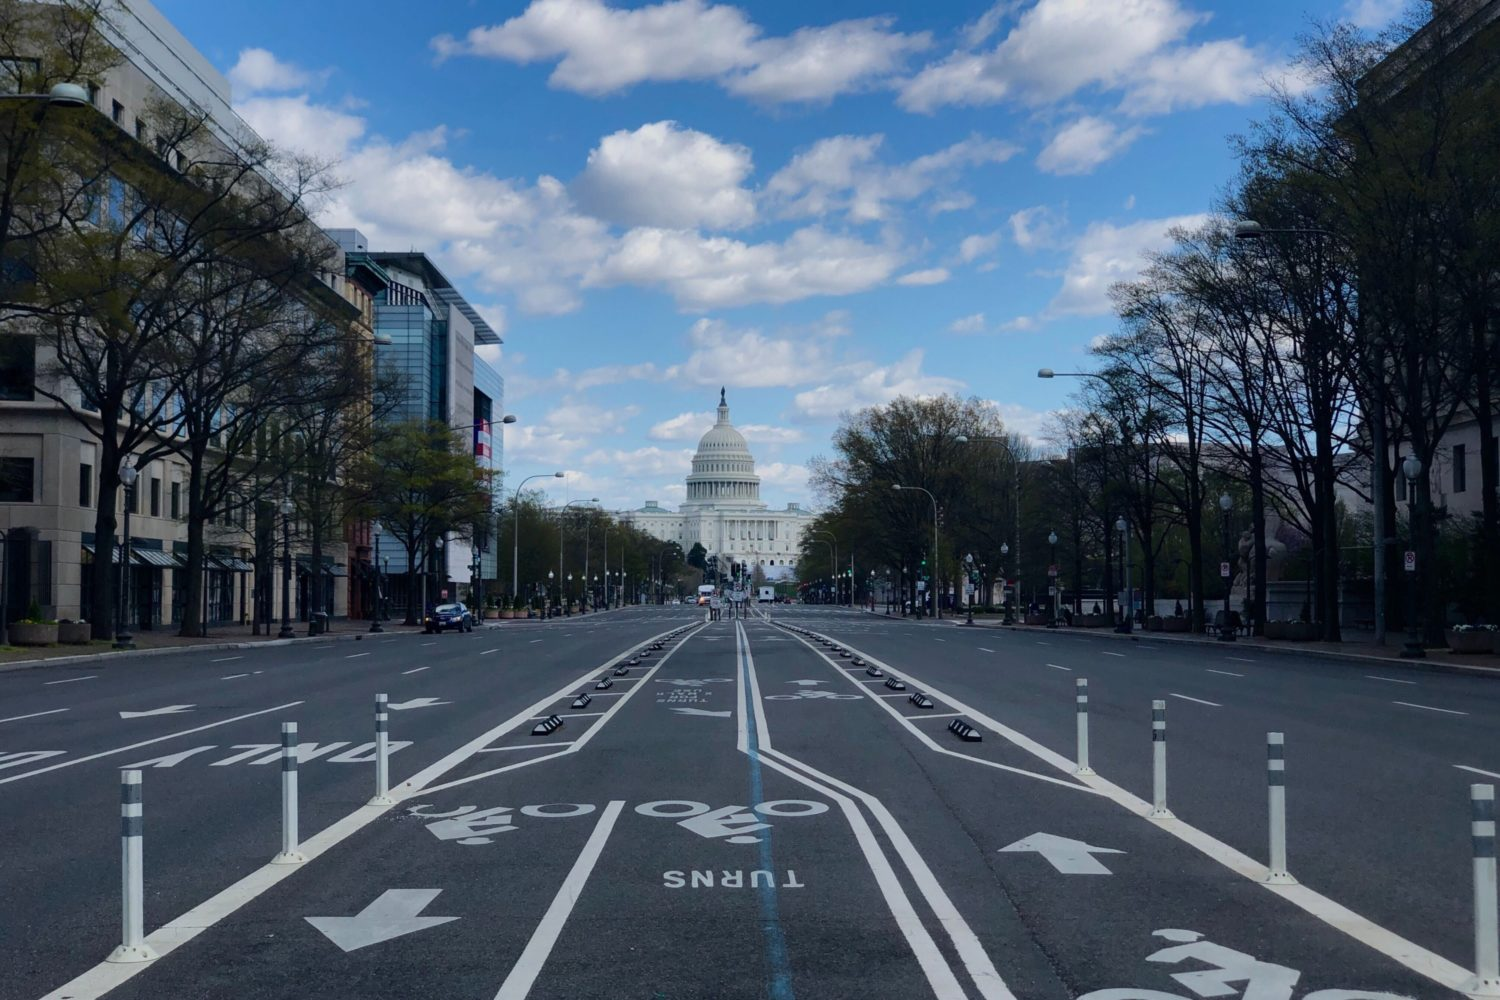 A deserted street in Washington, DC. Photo by Evy Mages.